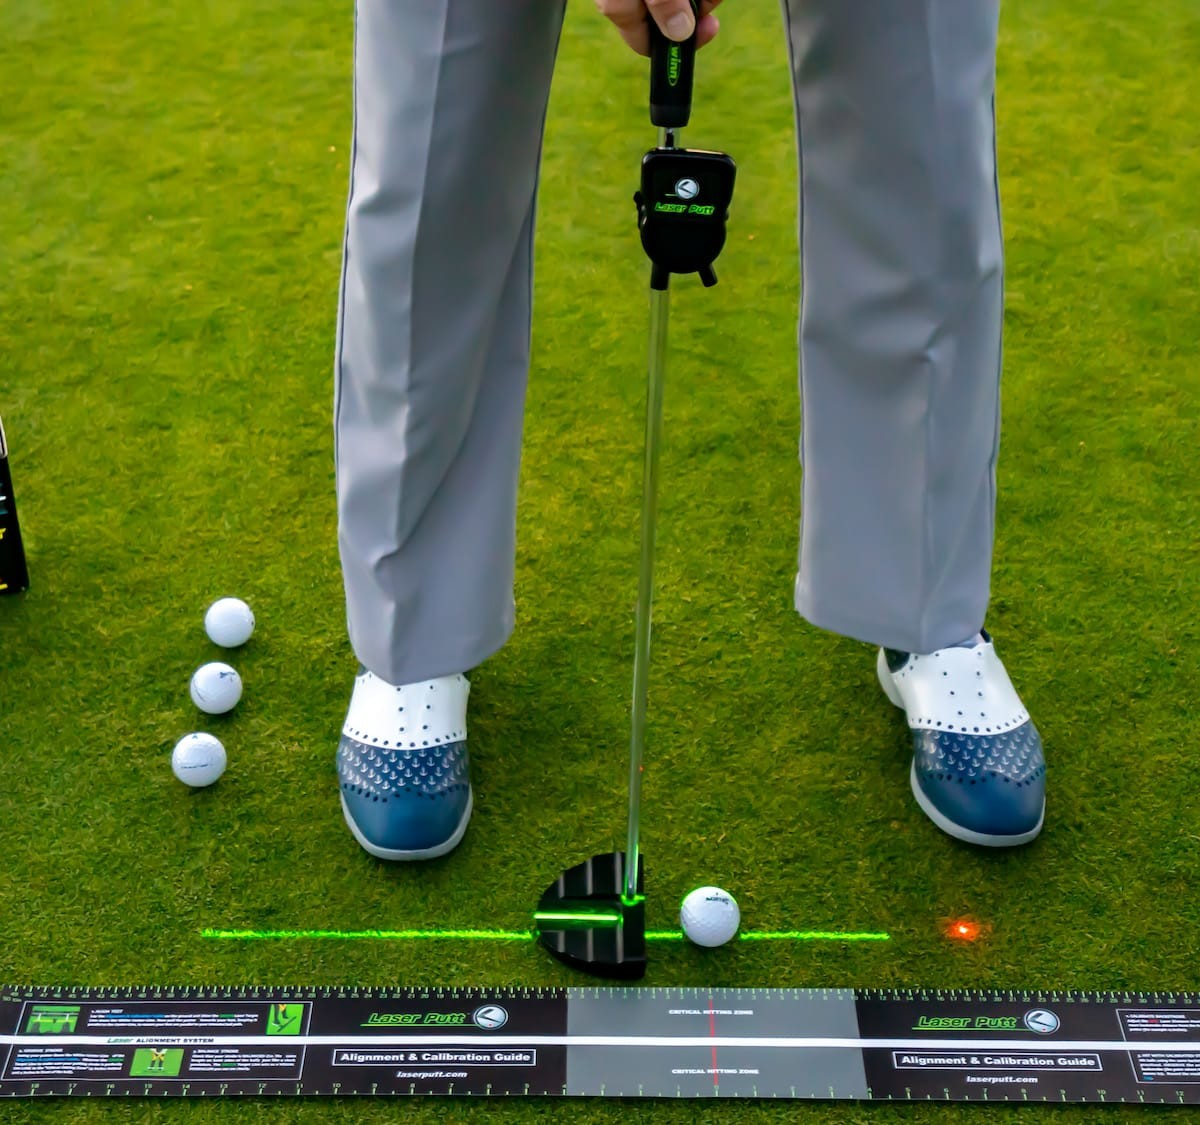 LaserPutt putting aid can help you improve your golf game